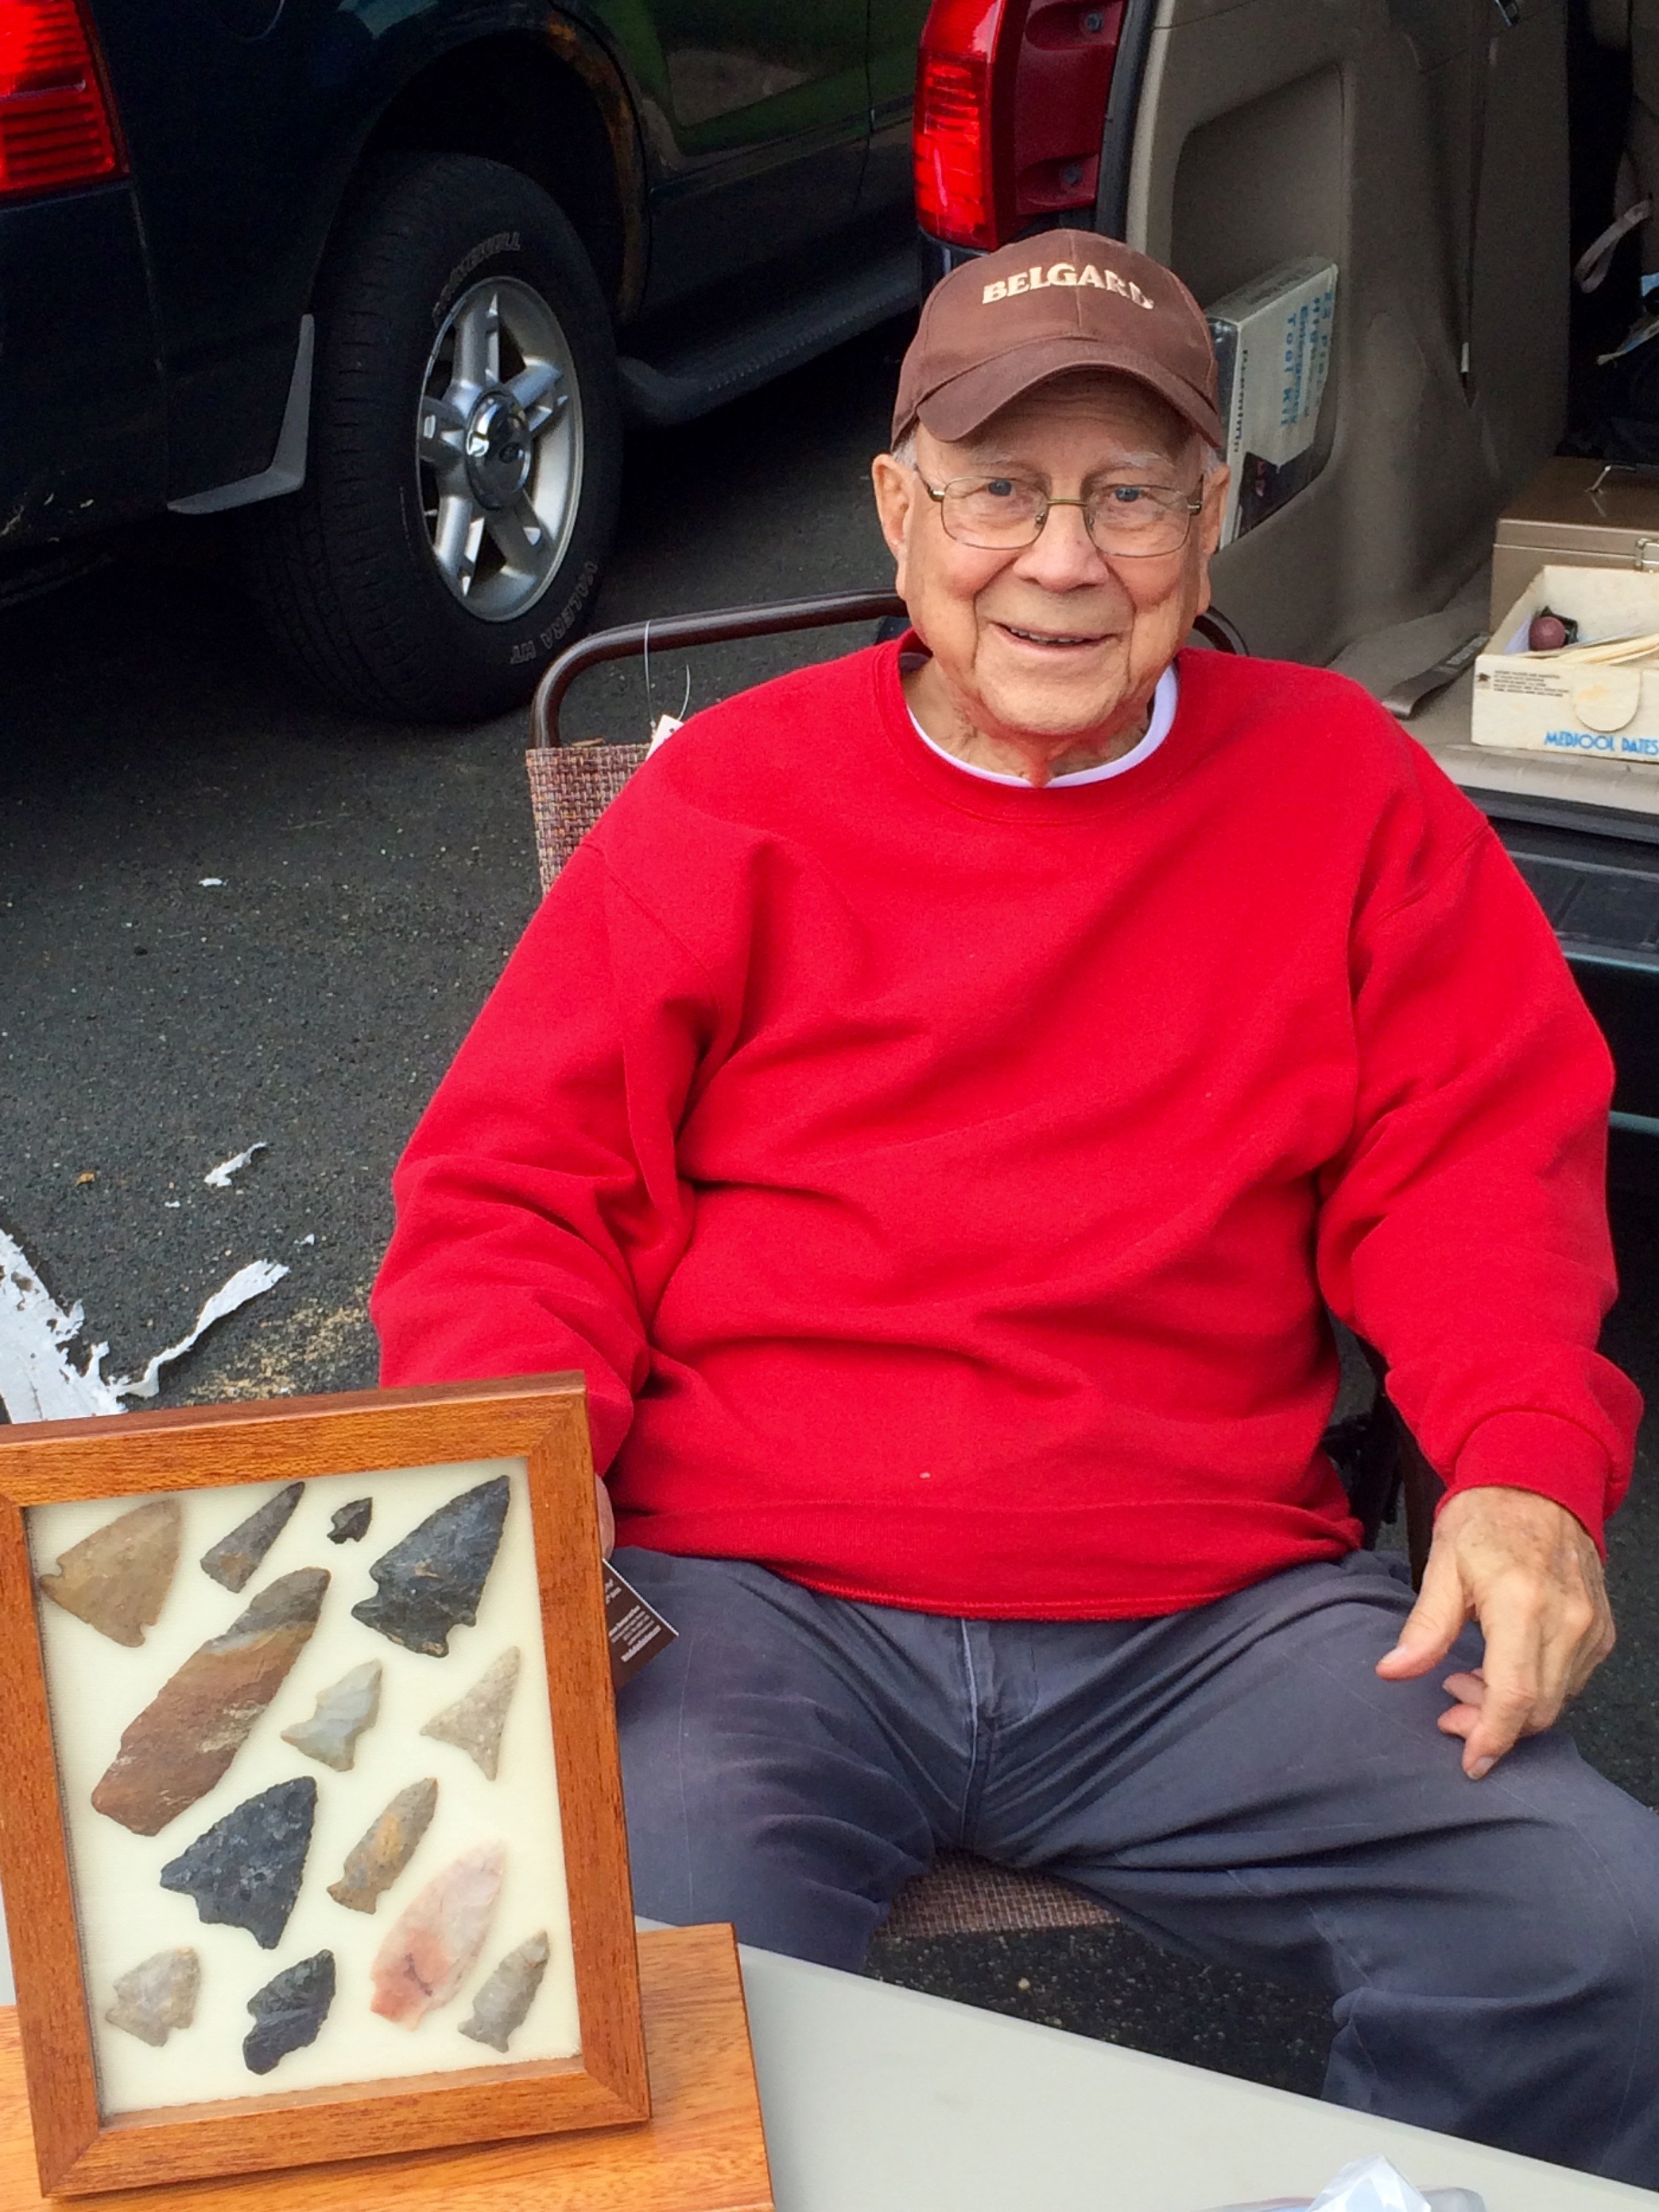 Mr. Lynn Rood with arrowheads inherited from his grandfather  at the Osseo Rock Swap